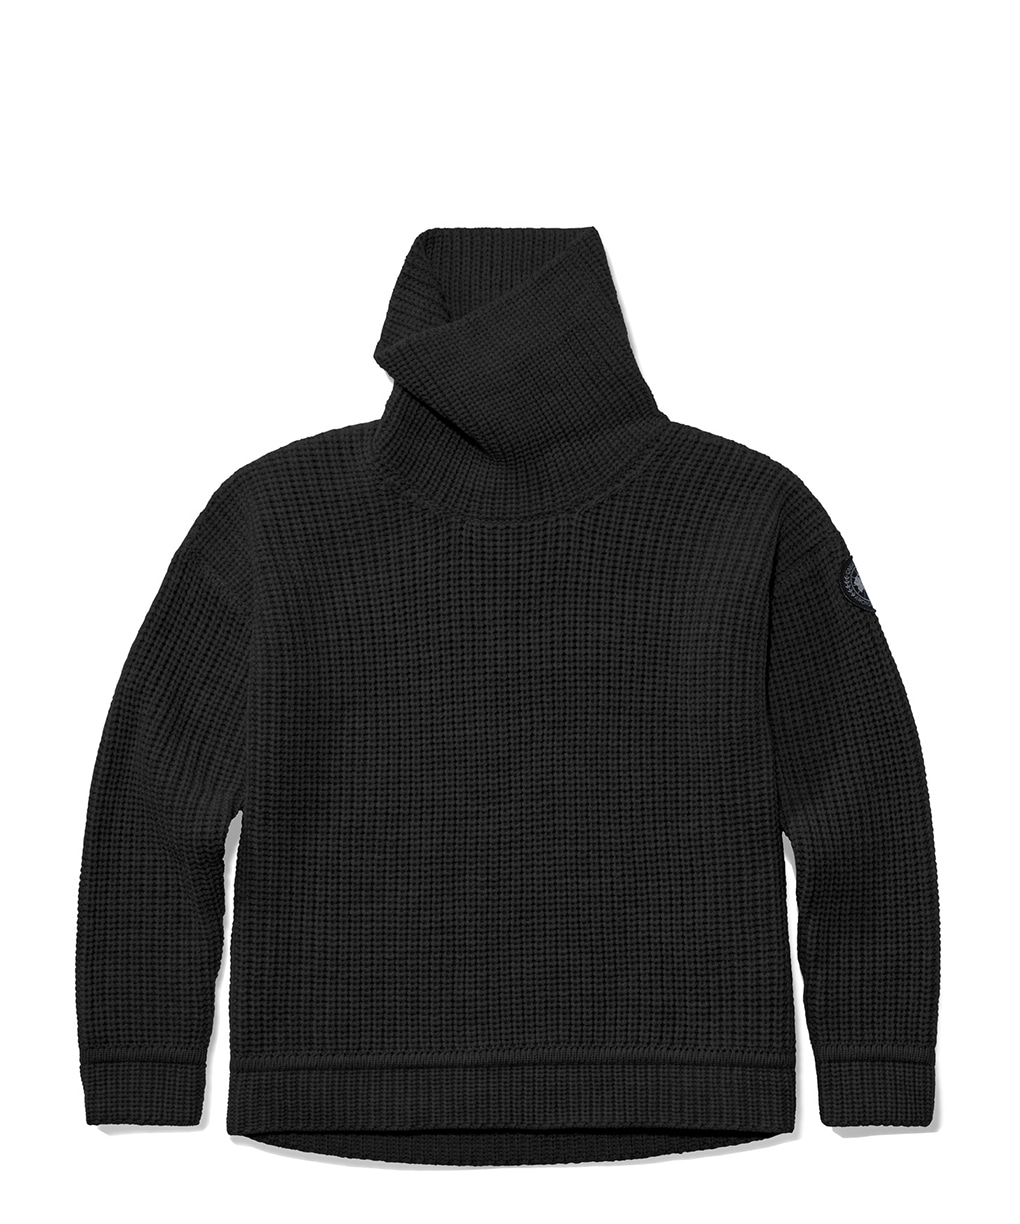 WILLISTON SWEATER